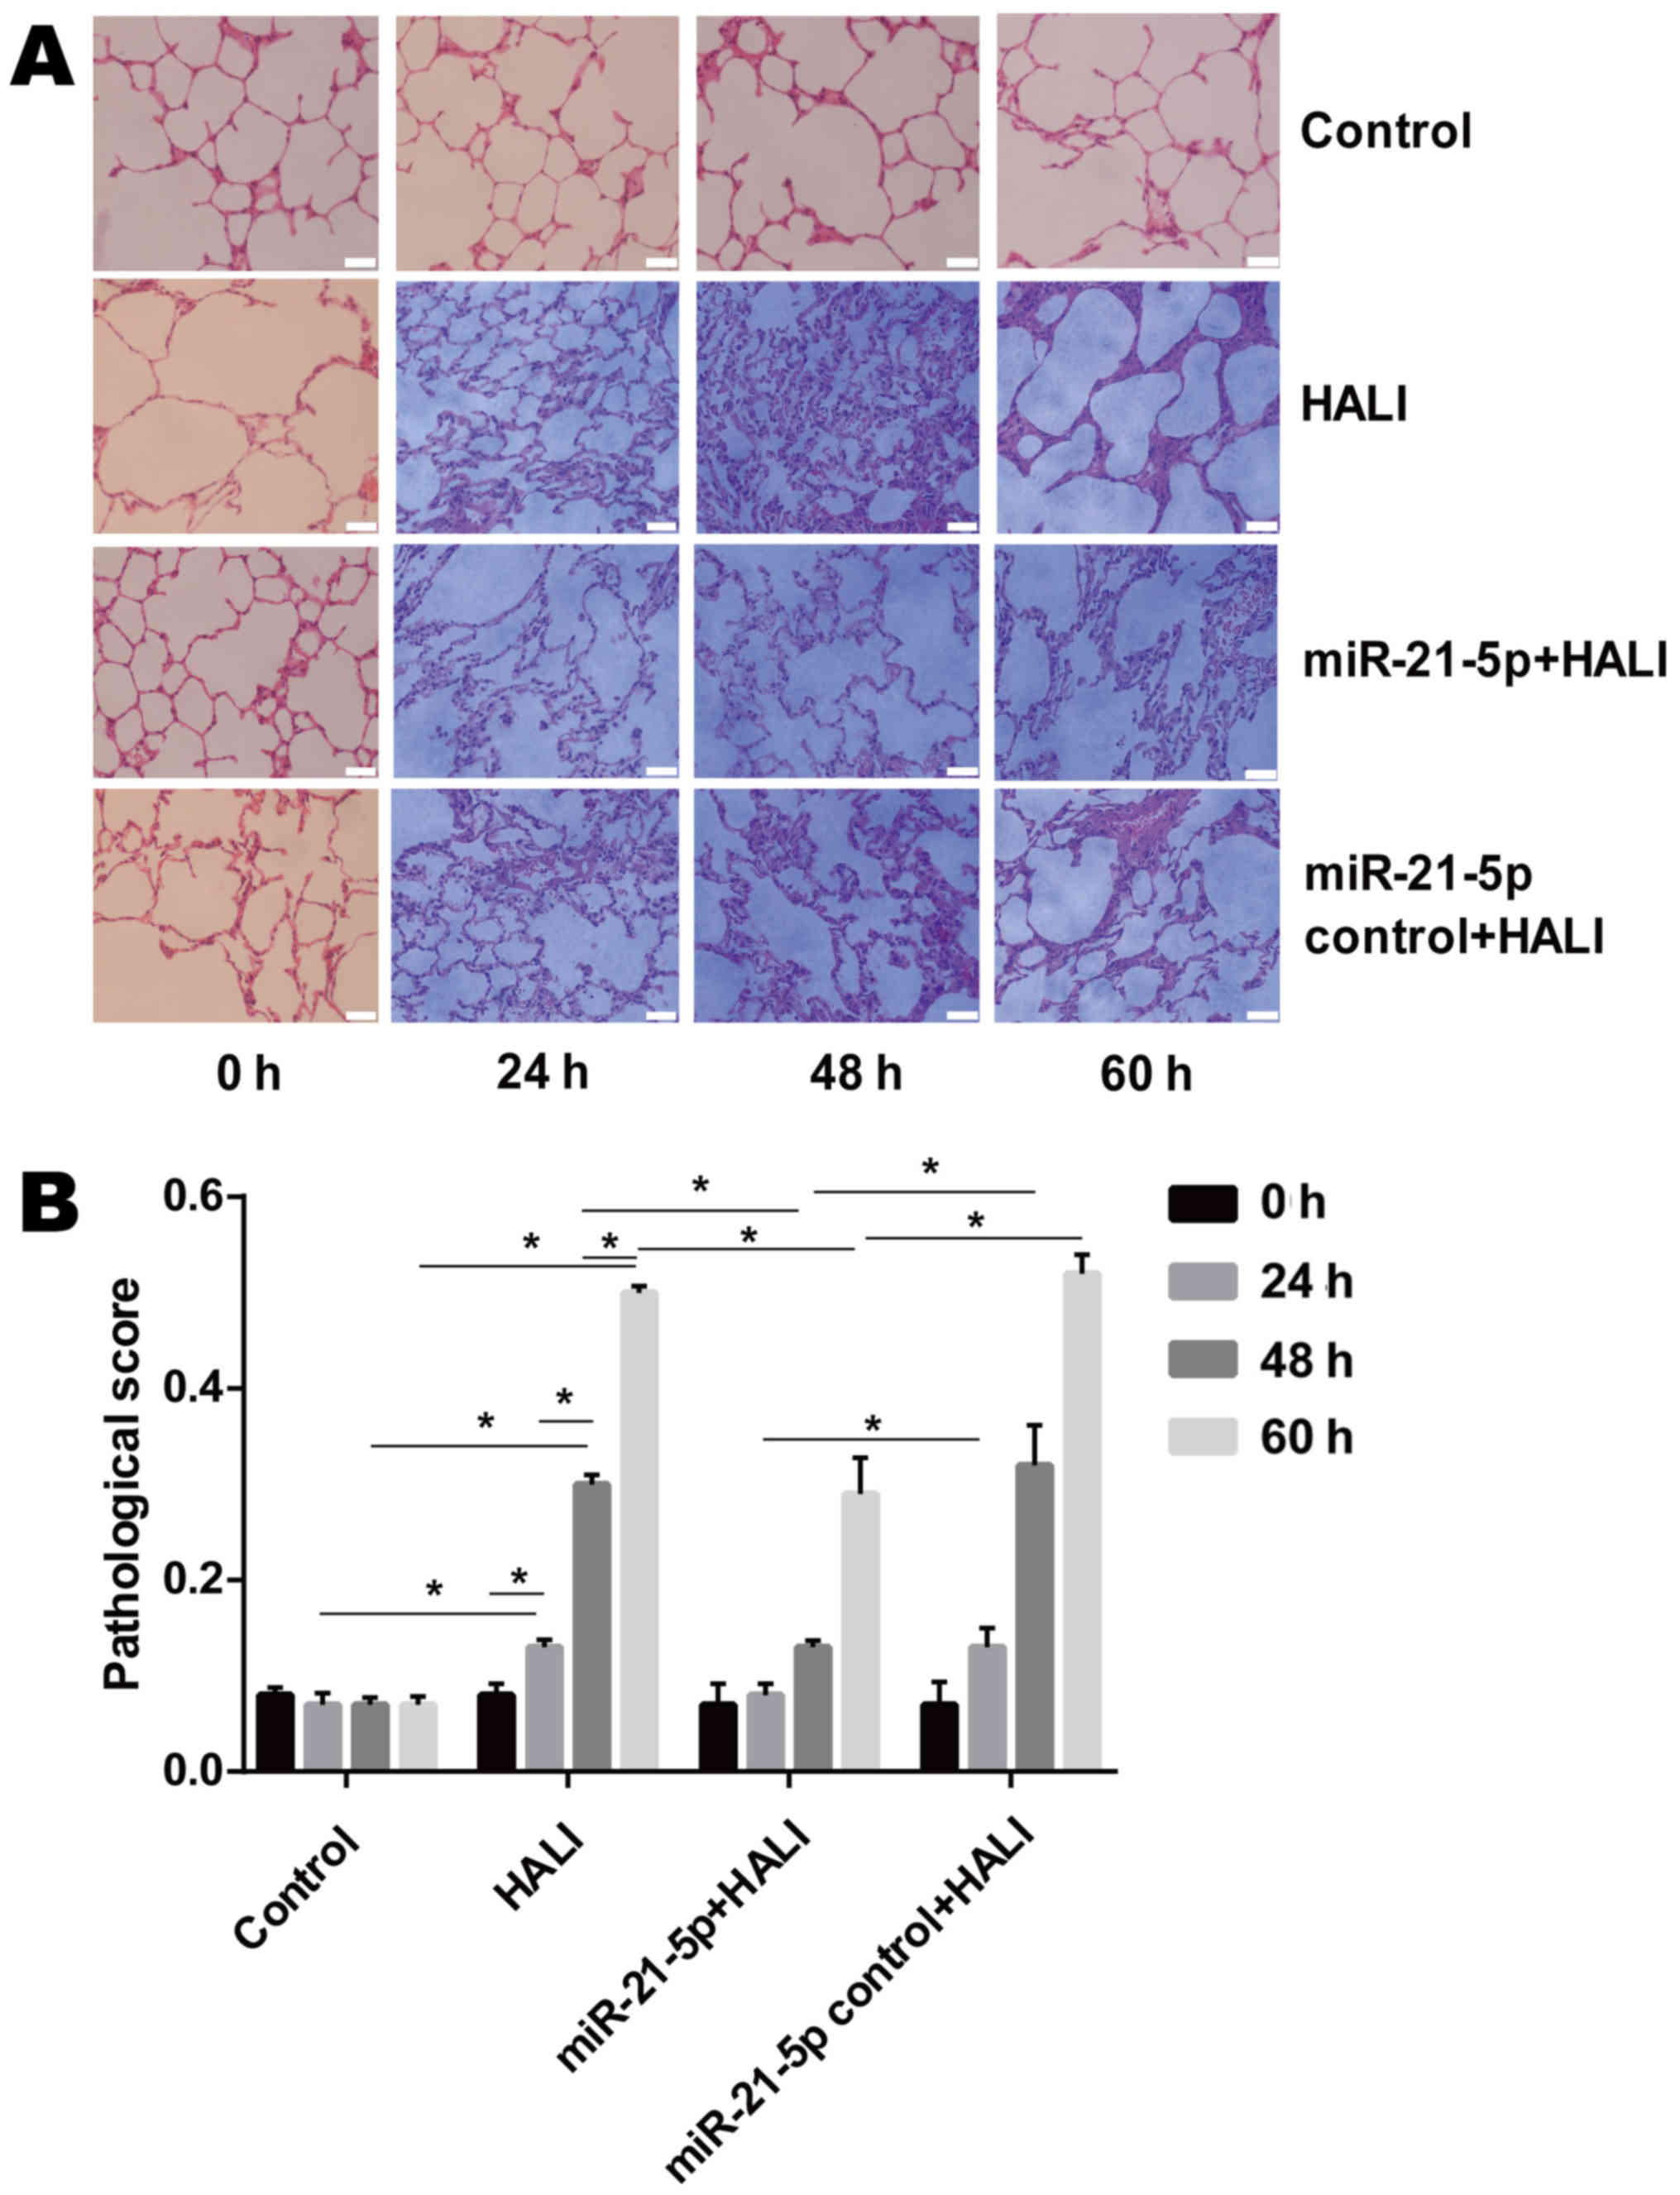 The antiinflammatory effects of AF-1 on bleomycin-induced